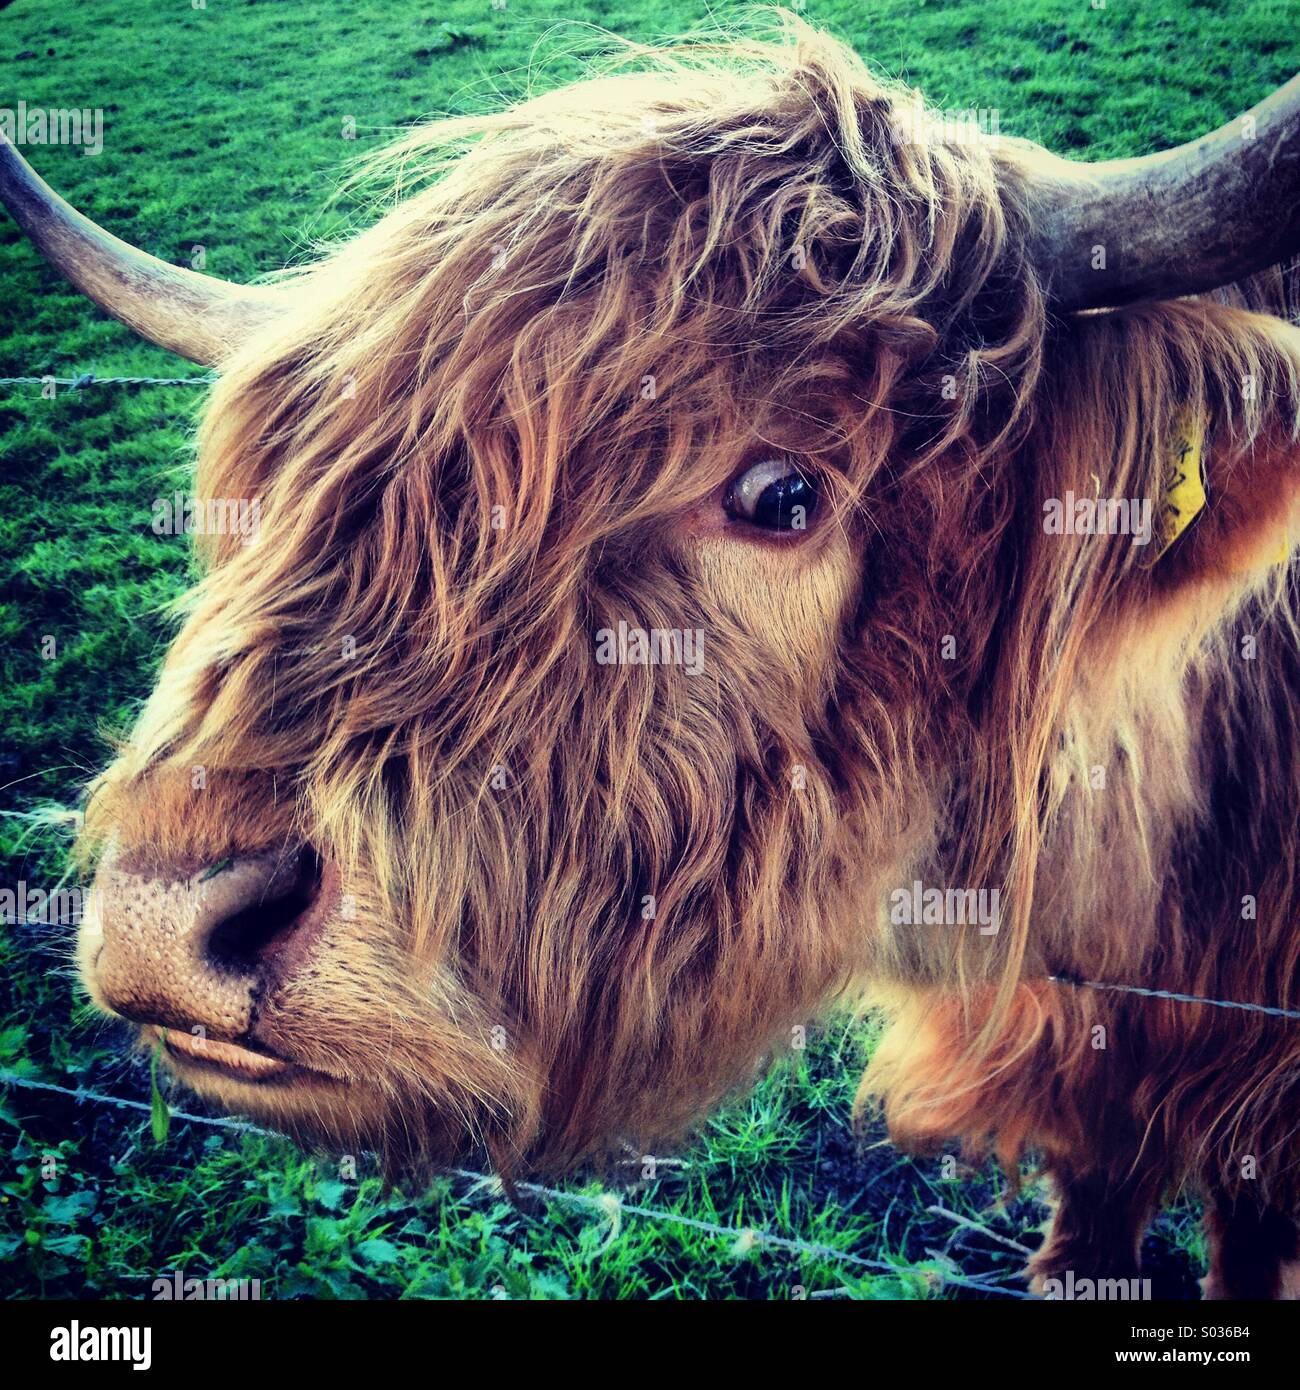 Highland cow, Sutton-under-Brailes, Oxfordshire. - Stock Image